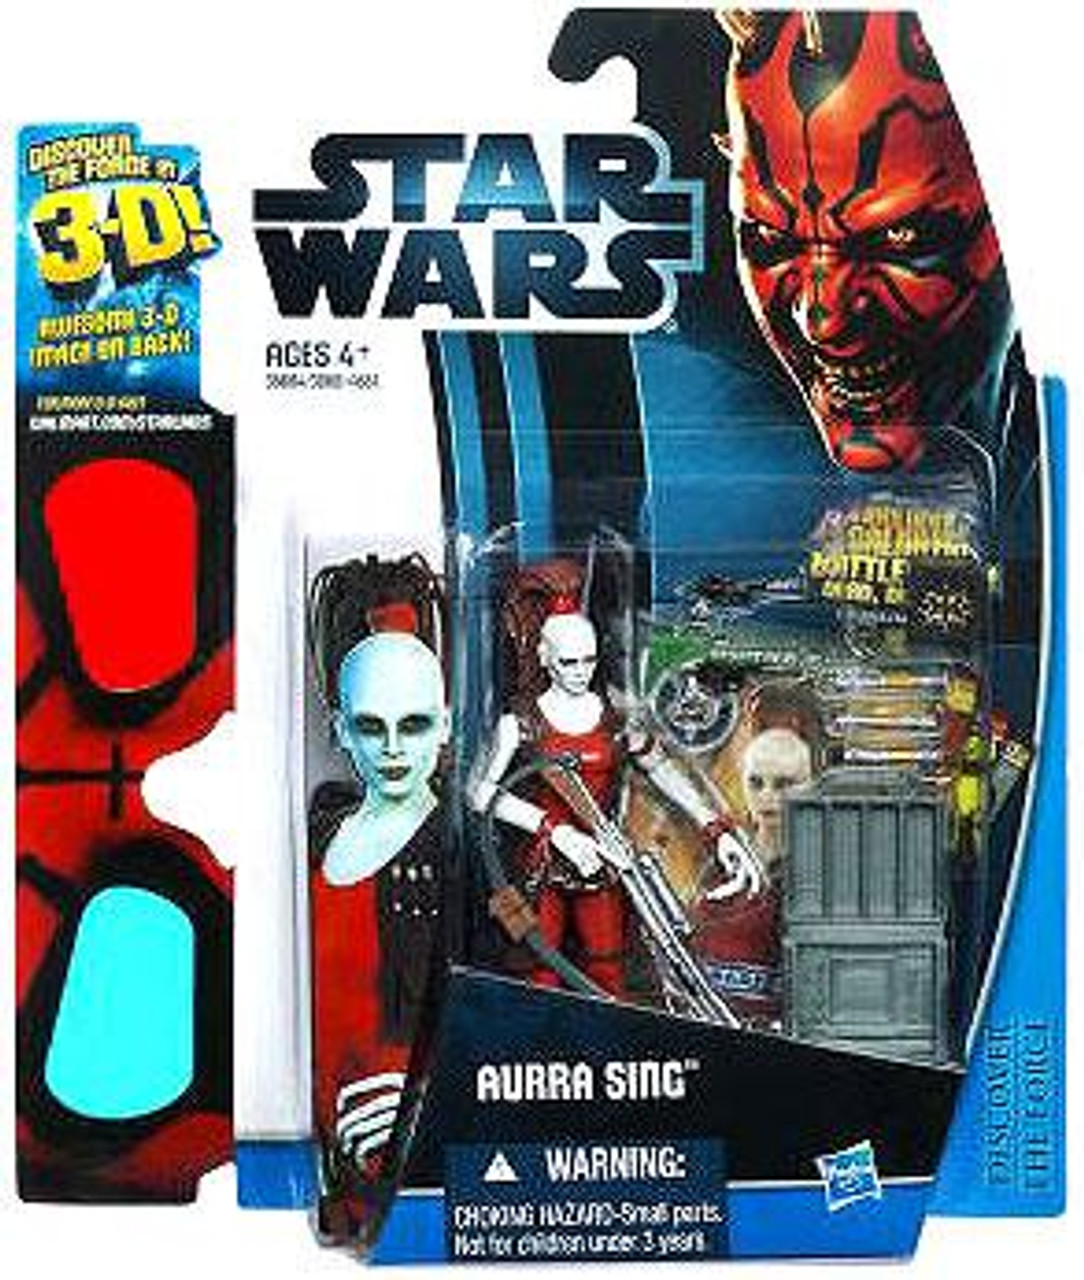 Star Wars The Phantom Menace Discover the Force 2012 Aurra Sing Exclusive Action Figure